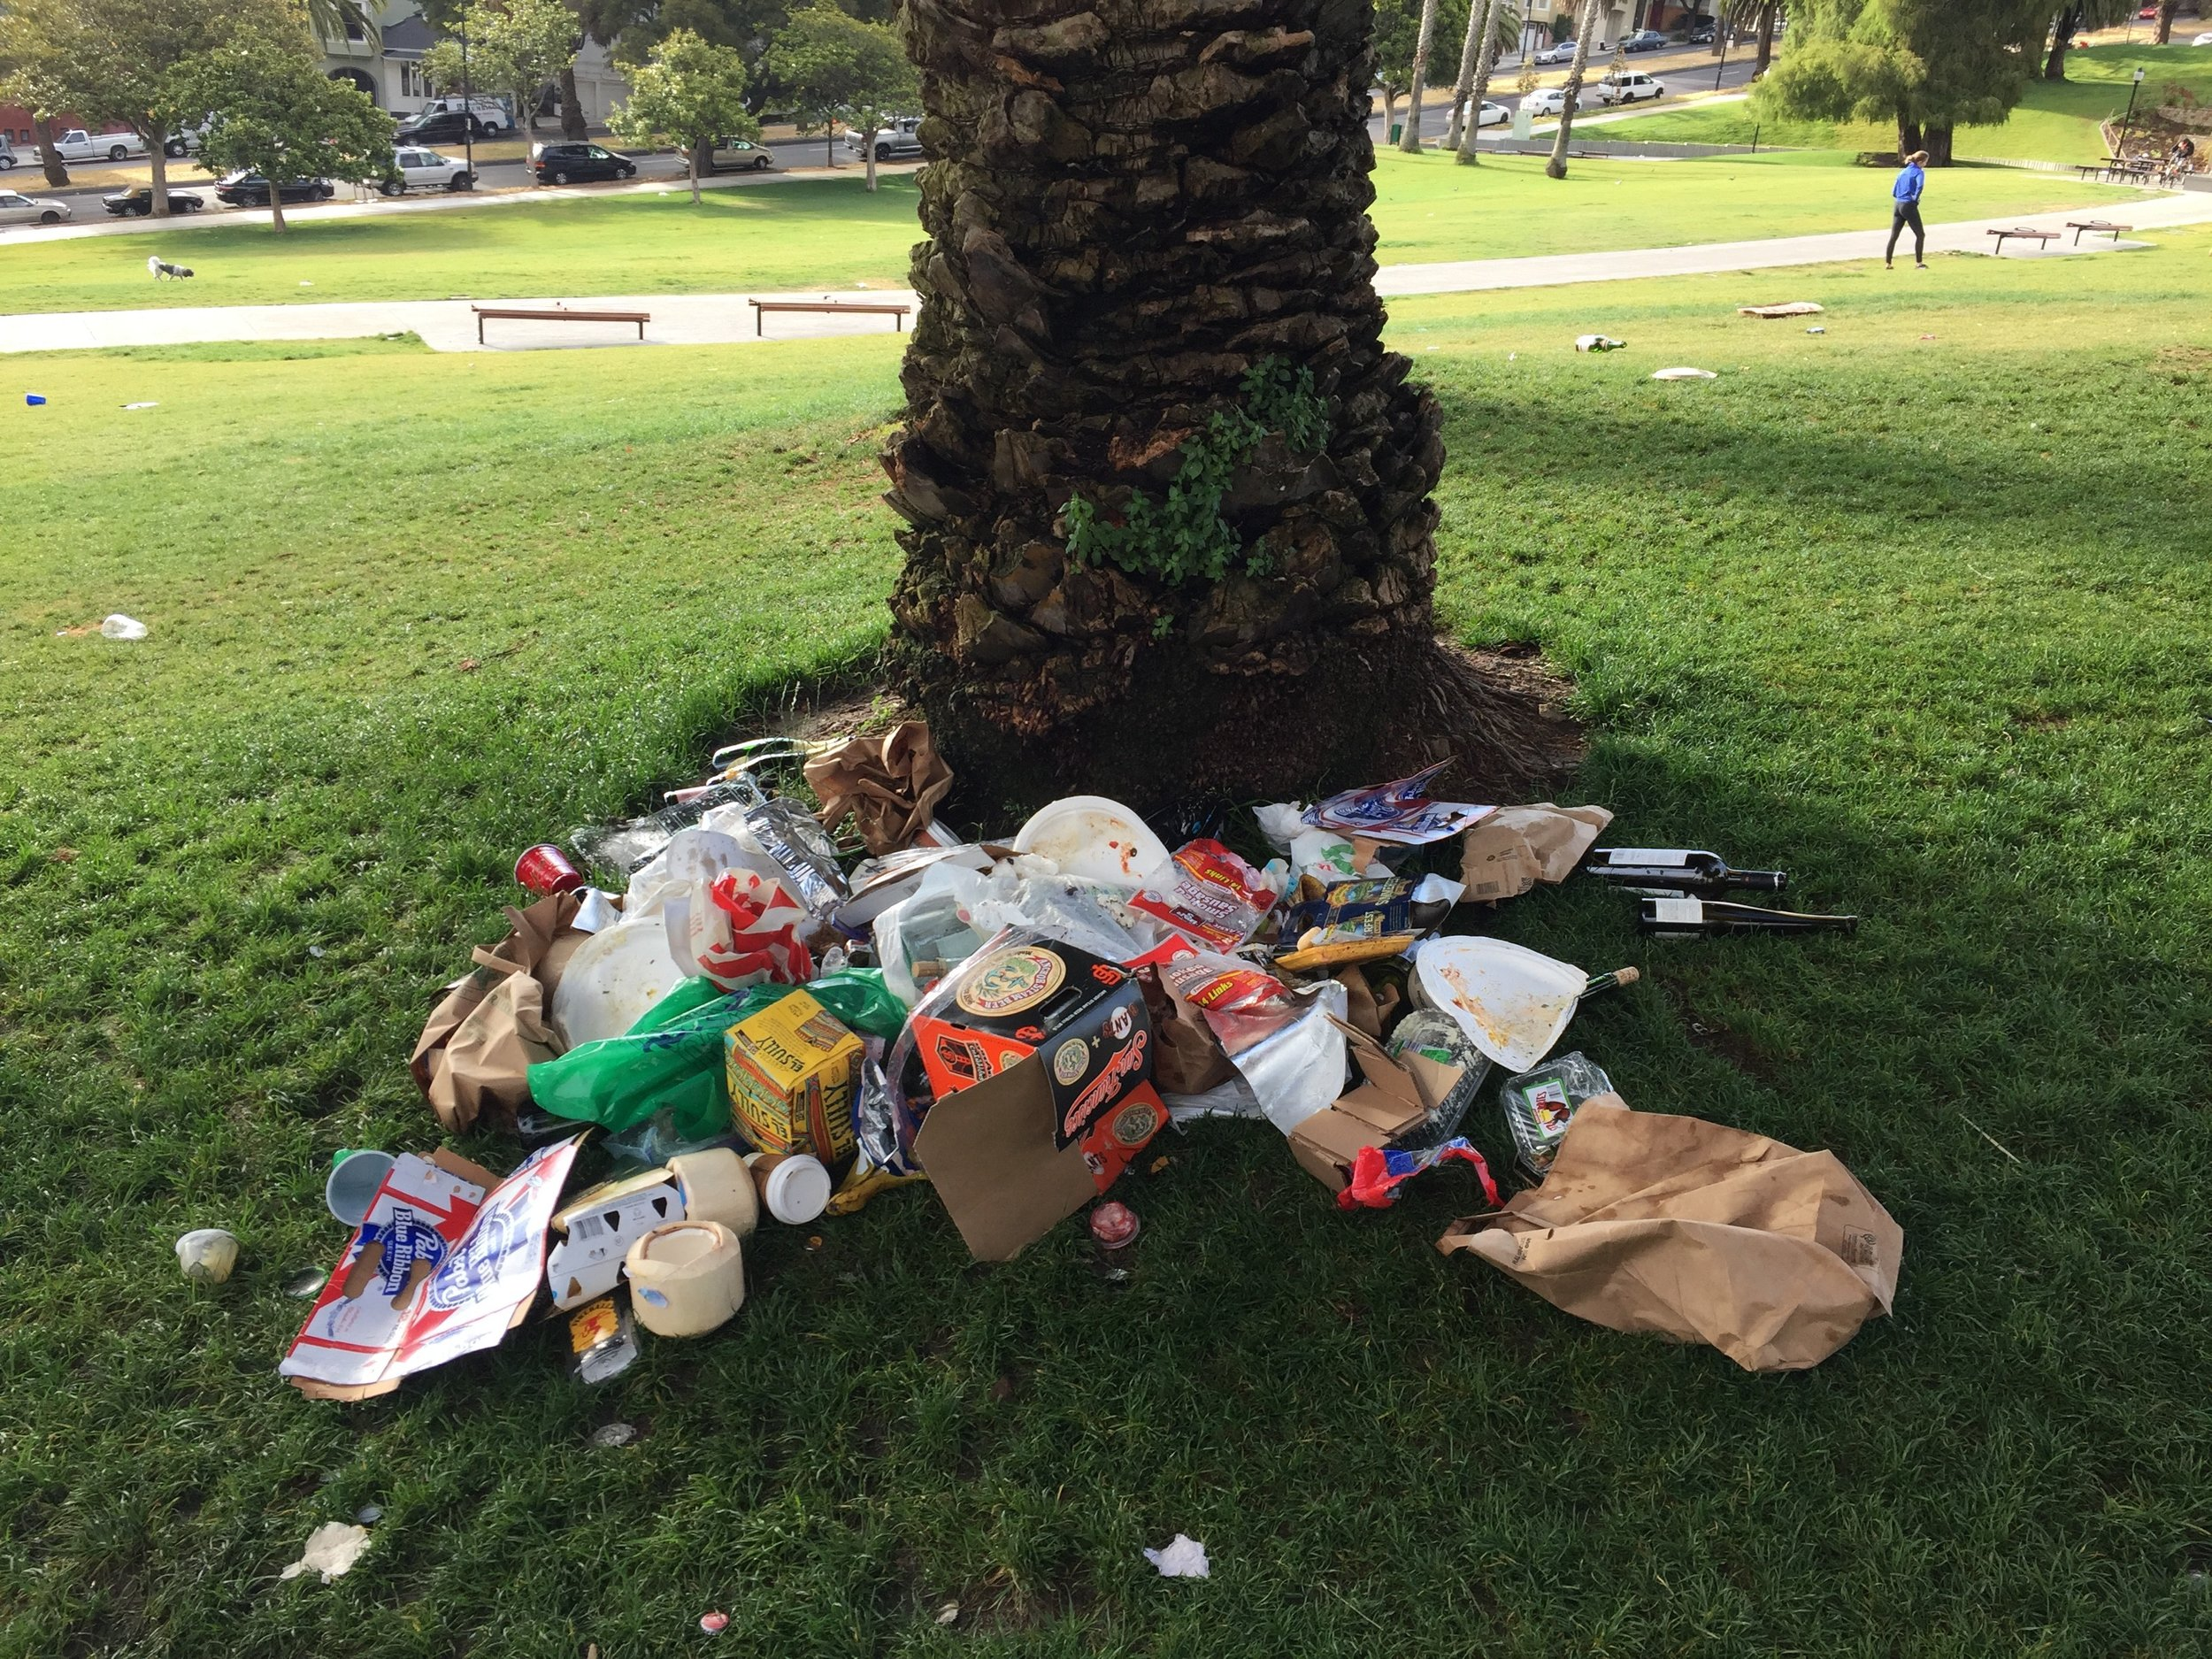 Dolores 7 - trash in tree well.jpg